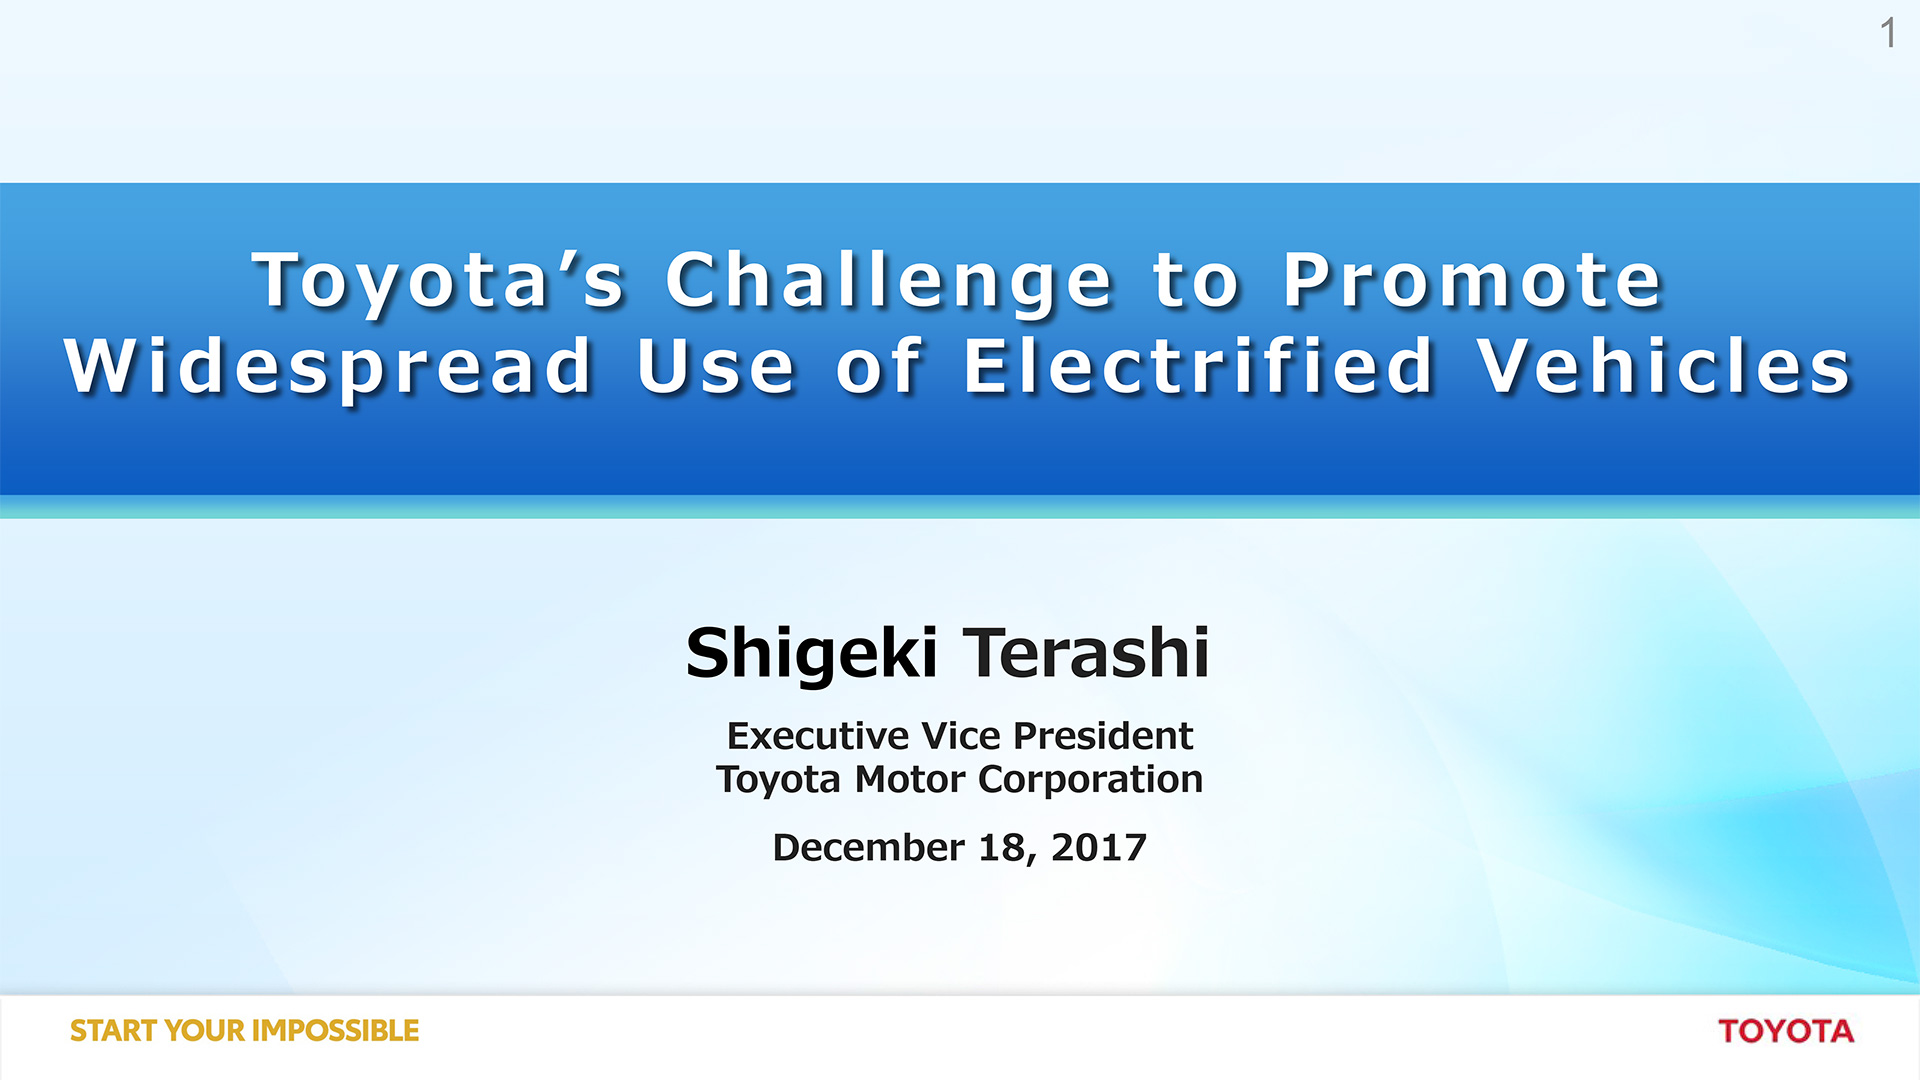 Presentation: Toyota's Challenge to Promote Widespread Use of Electrified Vehicles